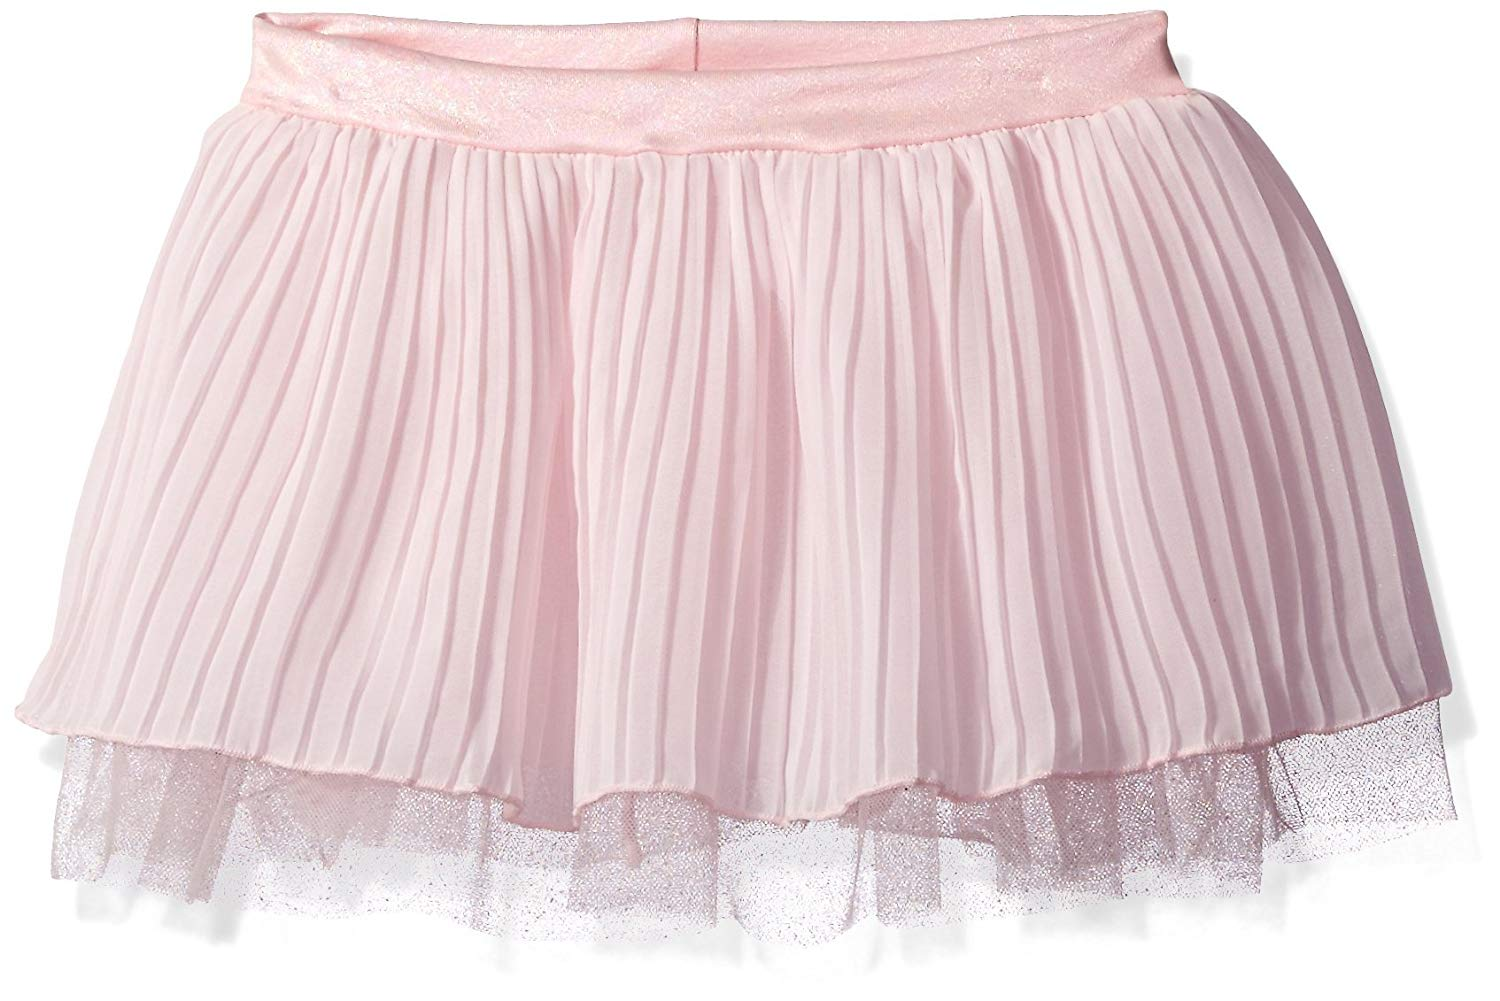 Capezio Girl's Pleated Tier Tutu Skirt